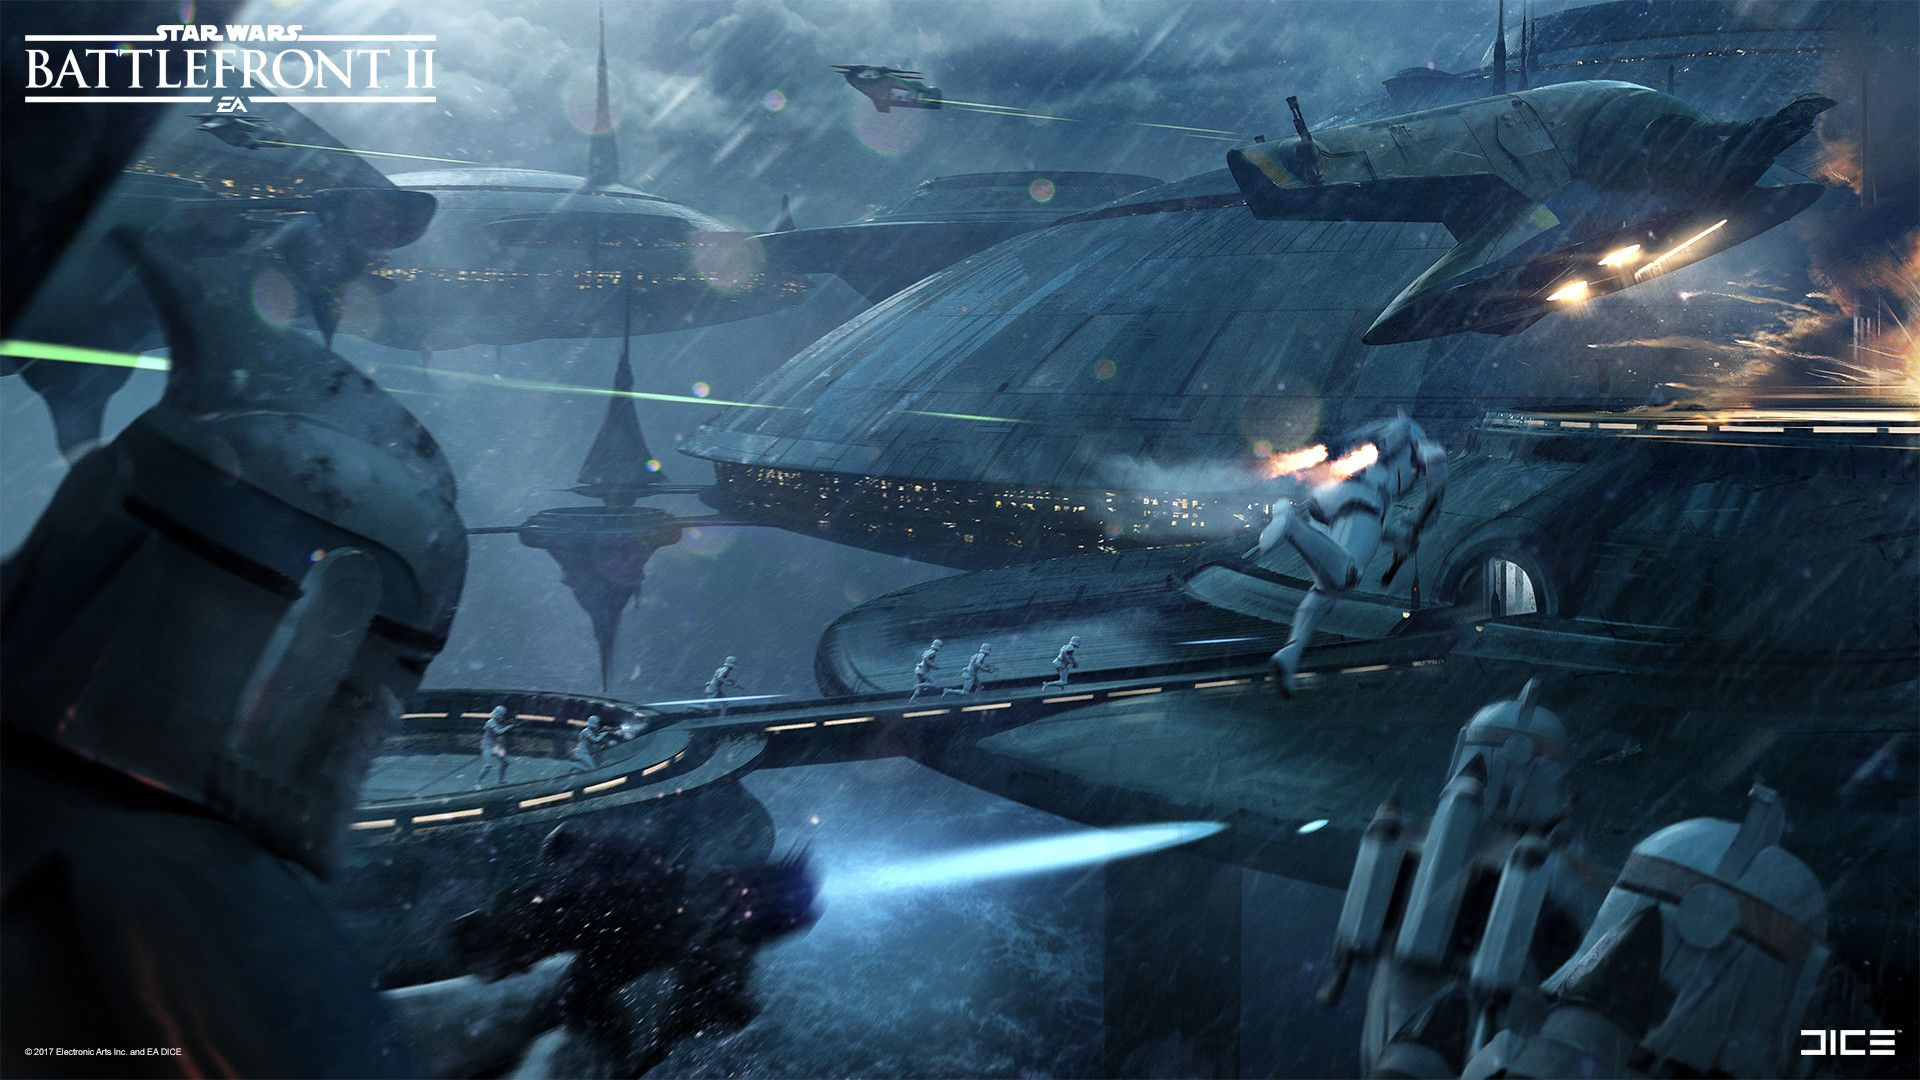 Battlefront 2 Early Concept Exploration Kamino By Anton